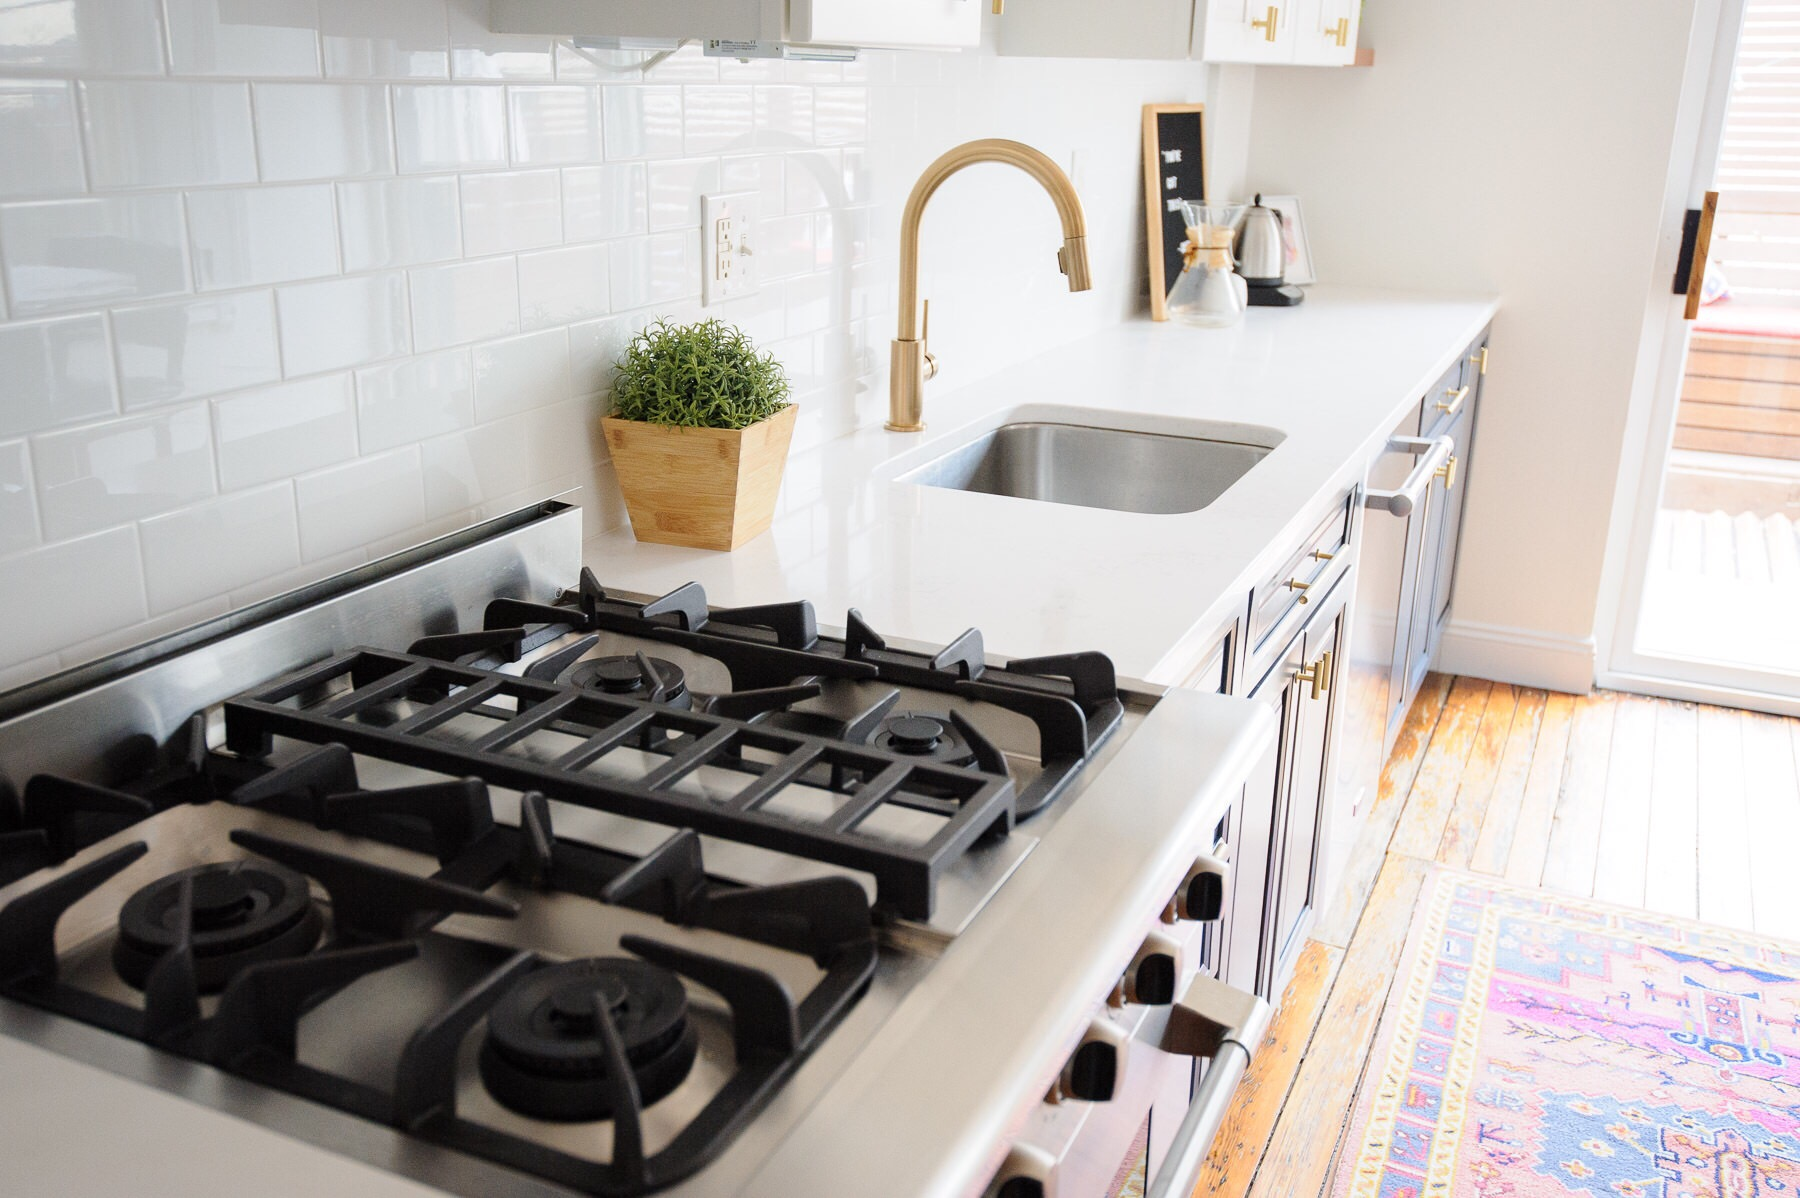 The after: a white, navy, and brass kitchen makeover in a Philadelphia row home. This kitchen got a serious refresh to give it a modern, clean, and cozy look. We chose Hale Navy for the lower cabinets, white subway tile, marble-like quartz countertops, and matte brass cabinet hardware. Designed by Mix & Match Design Company. Photos by Nate Photographic.